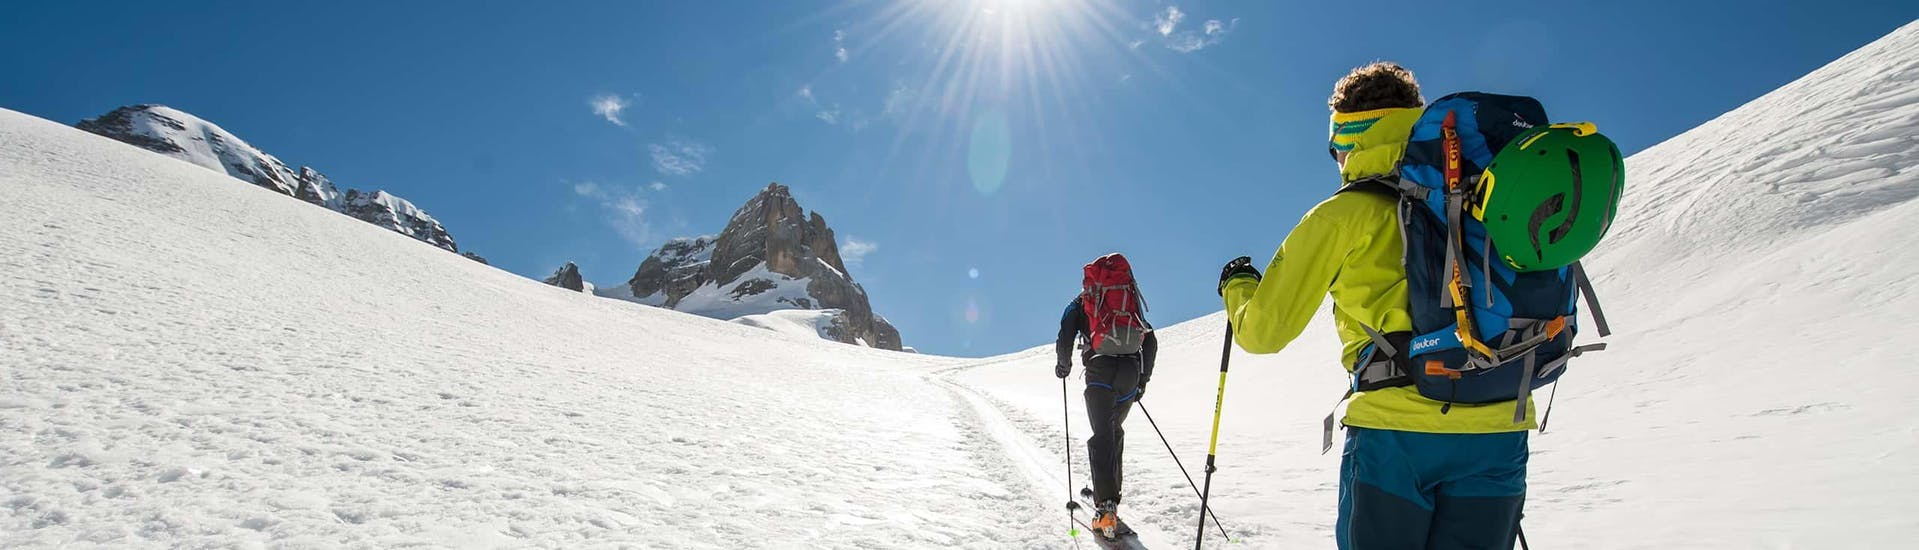 A skier following his Ski touring for intermediates from Skischule Alpin Experts up to the top of the mountain while out ski touring.